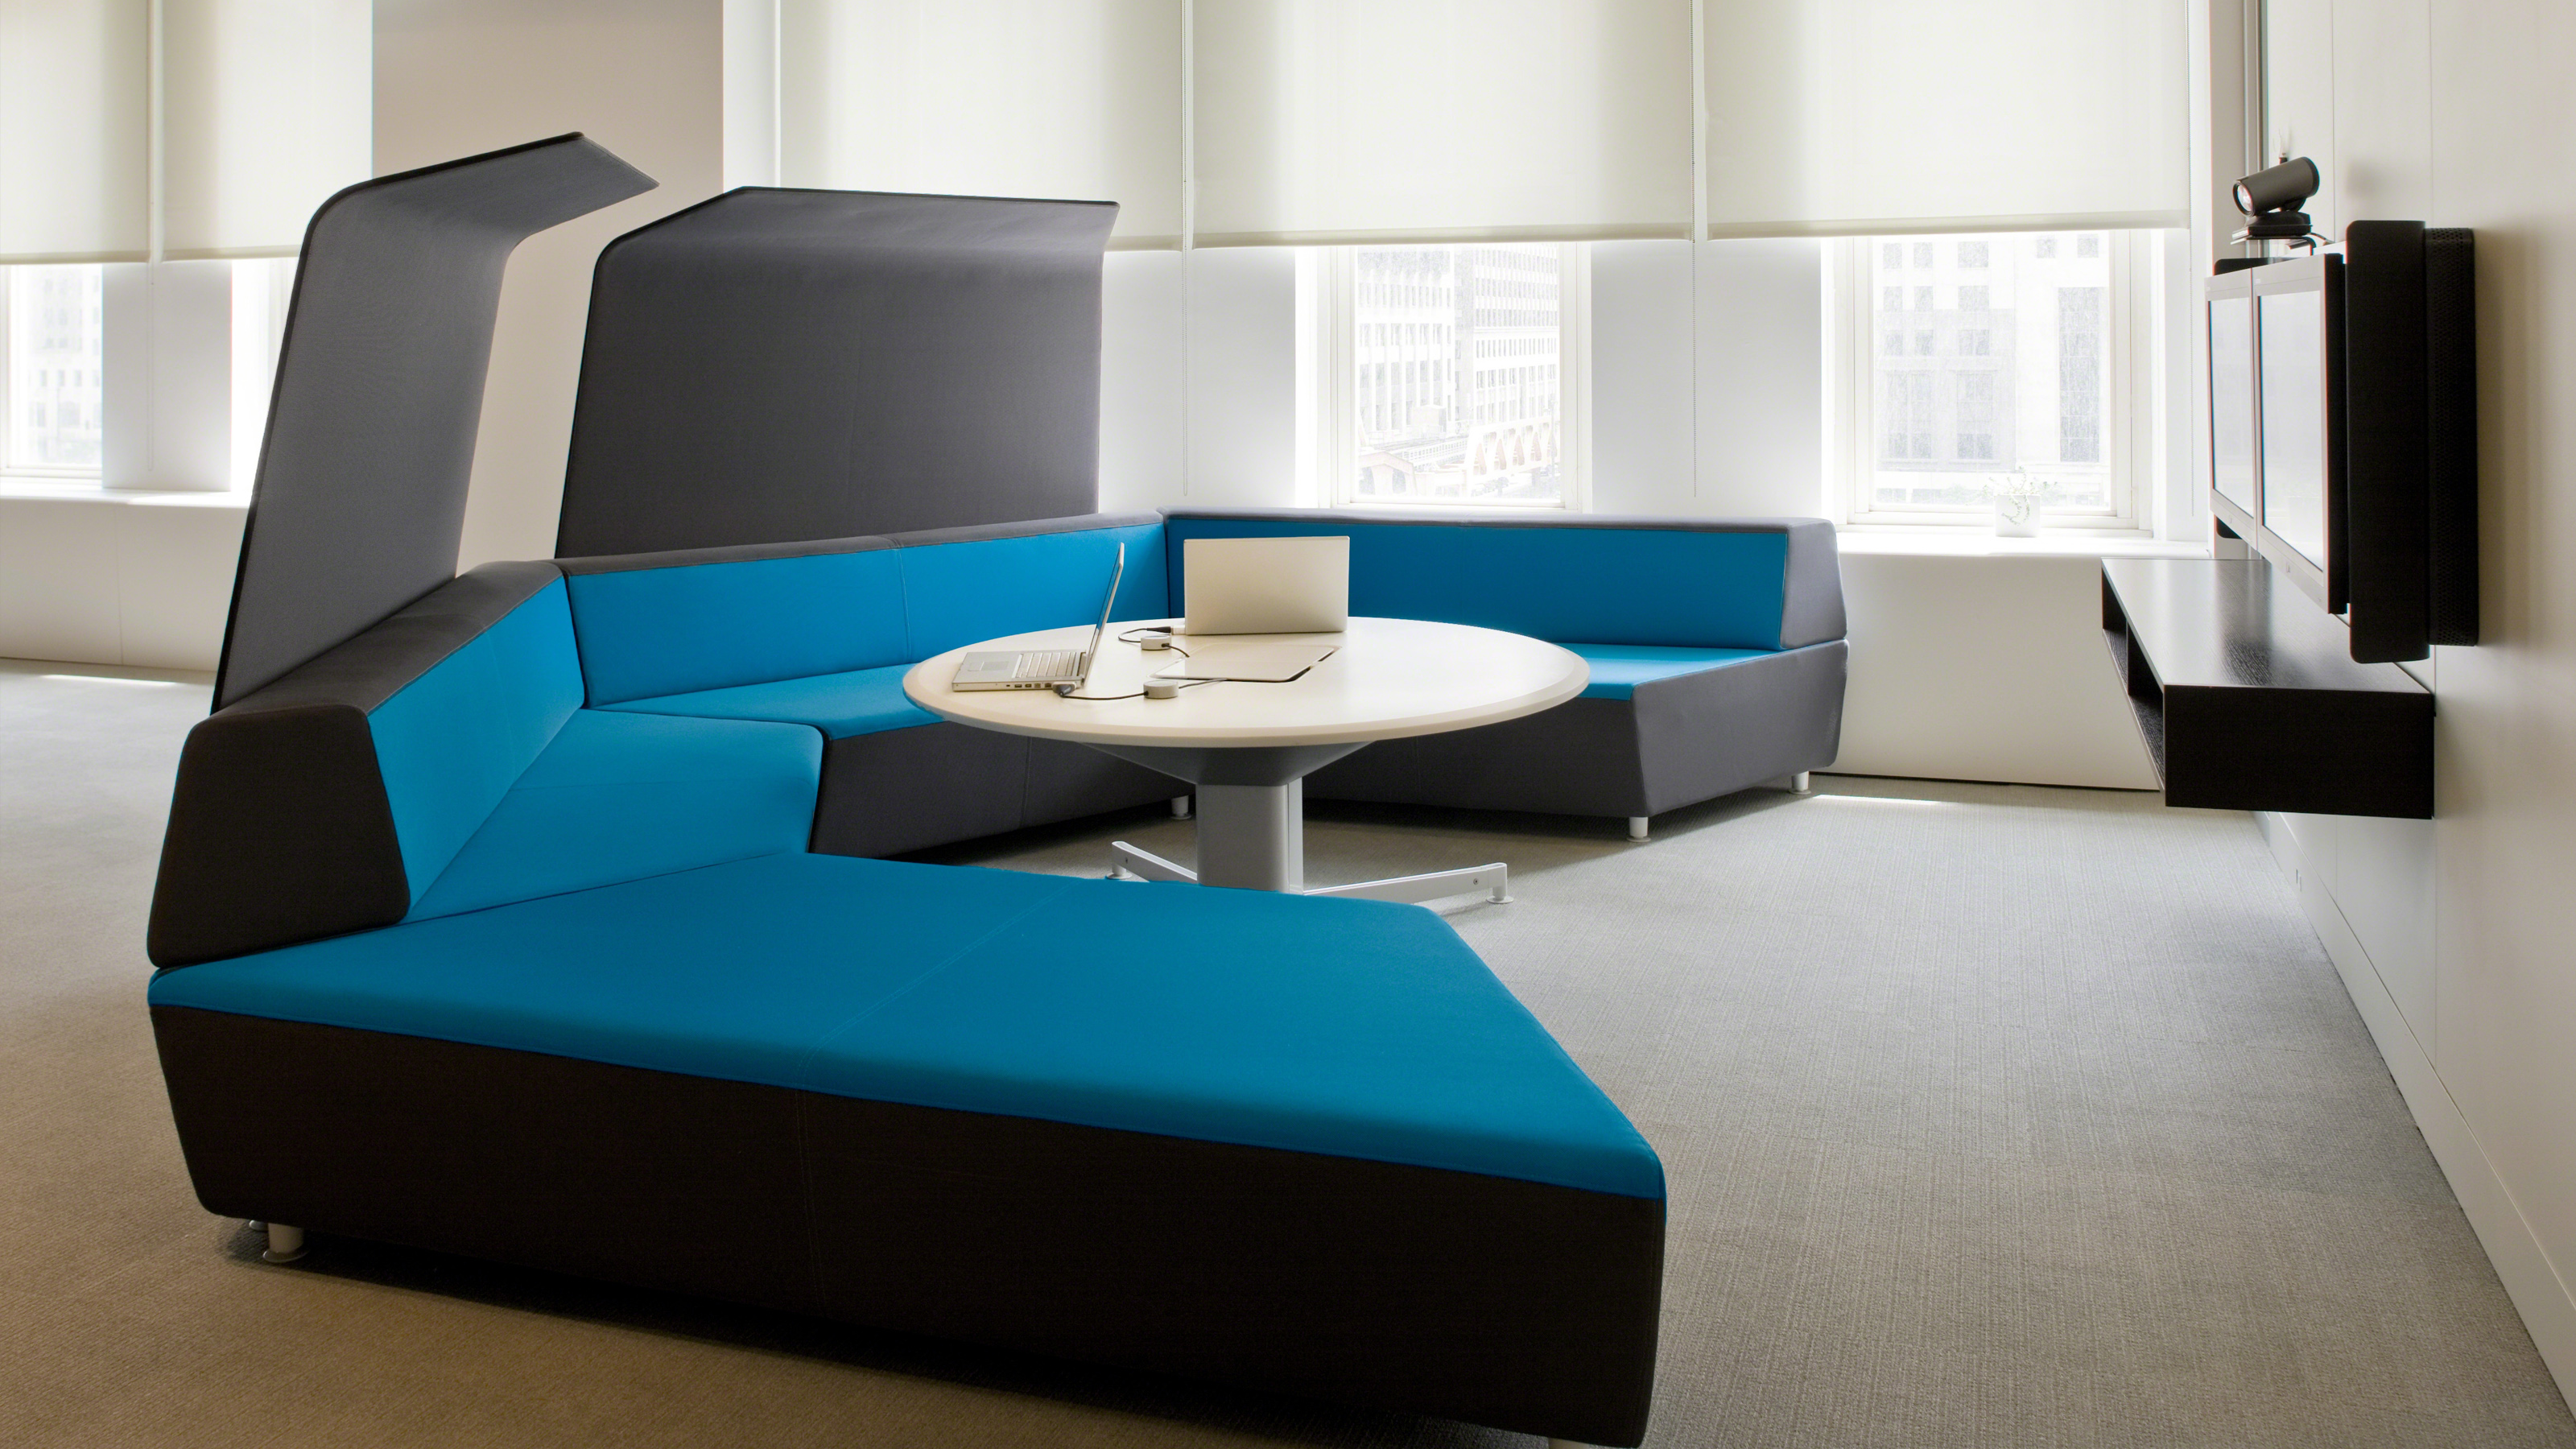 Media scape lounge seating office furnishings steelcase for Modern furniture companies